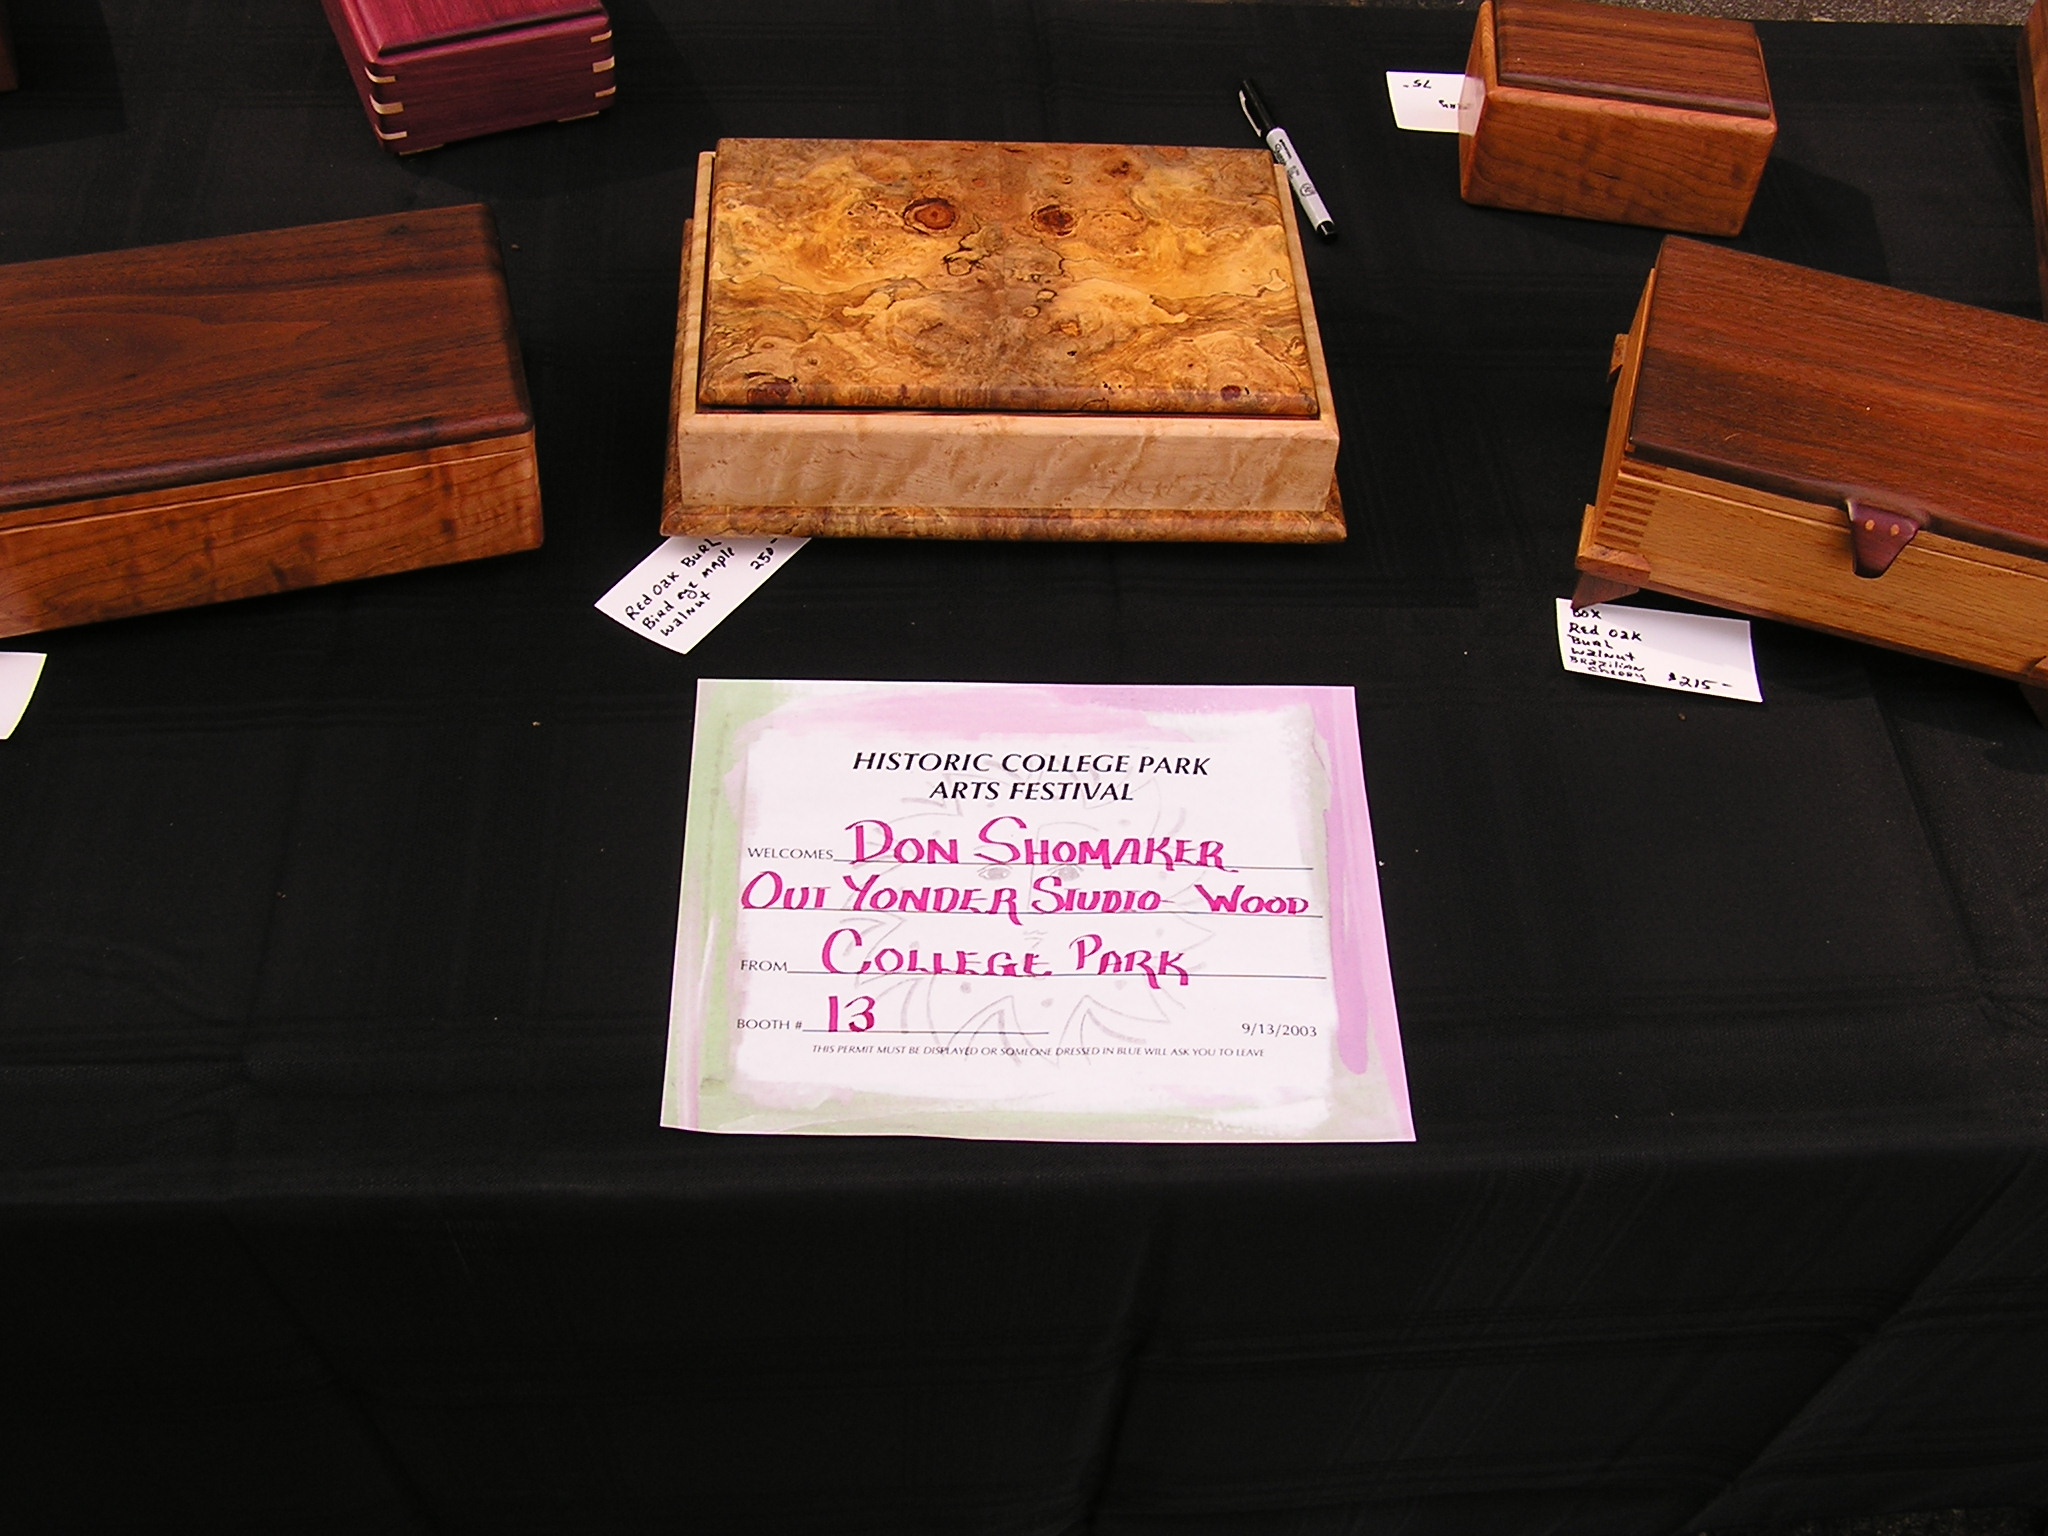 Assortment of Jewelry Boxes  Center - Oak Burl and Birdseye Maple Left - Curly Cherry and Walnut